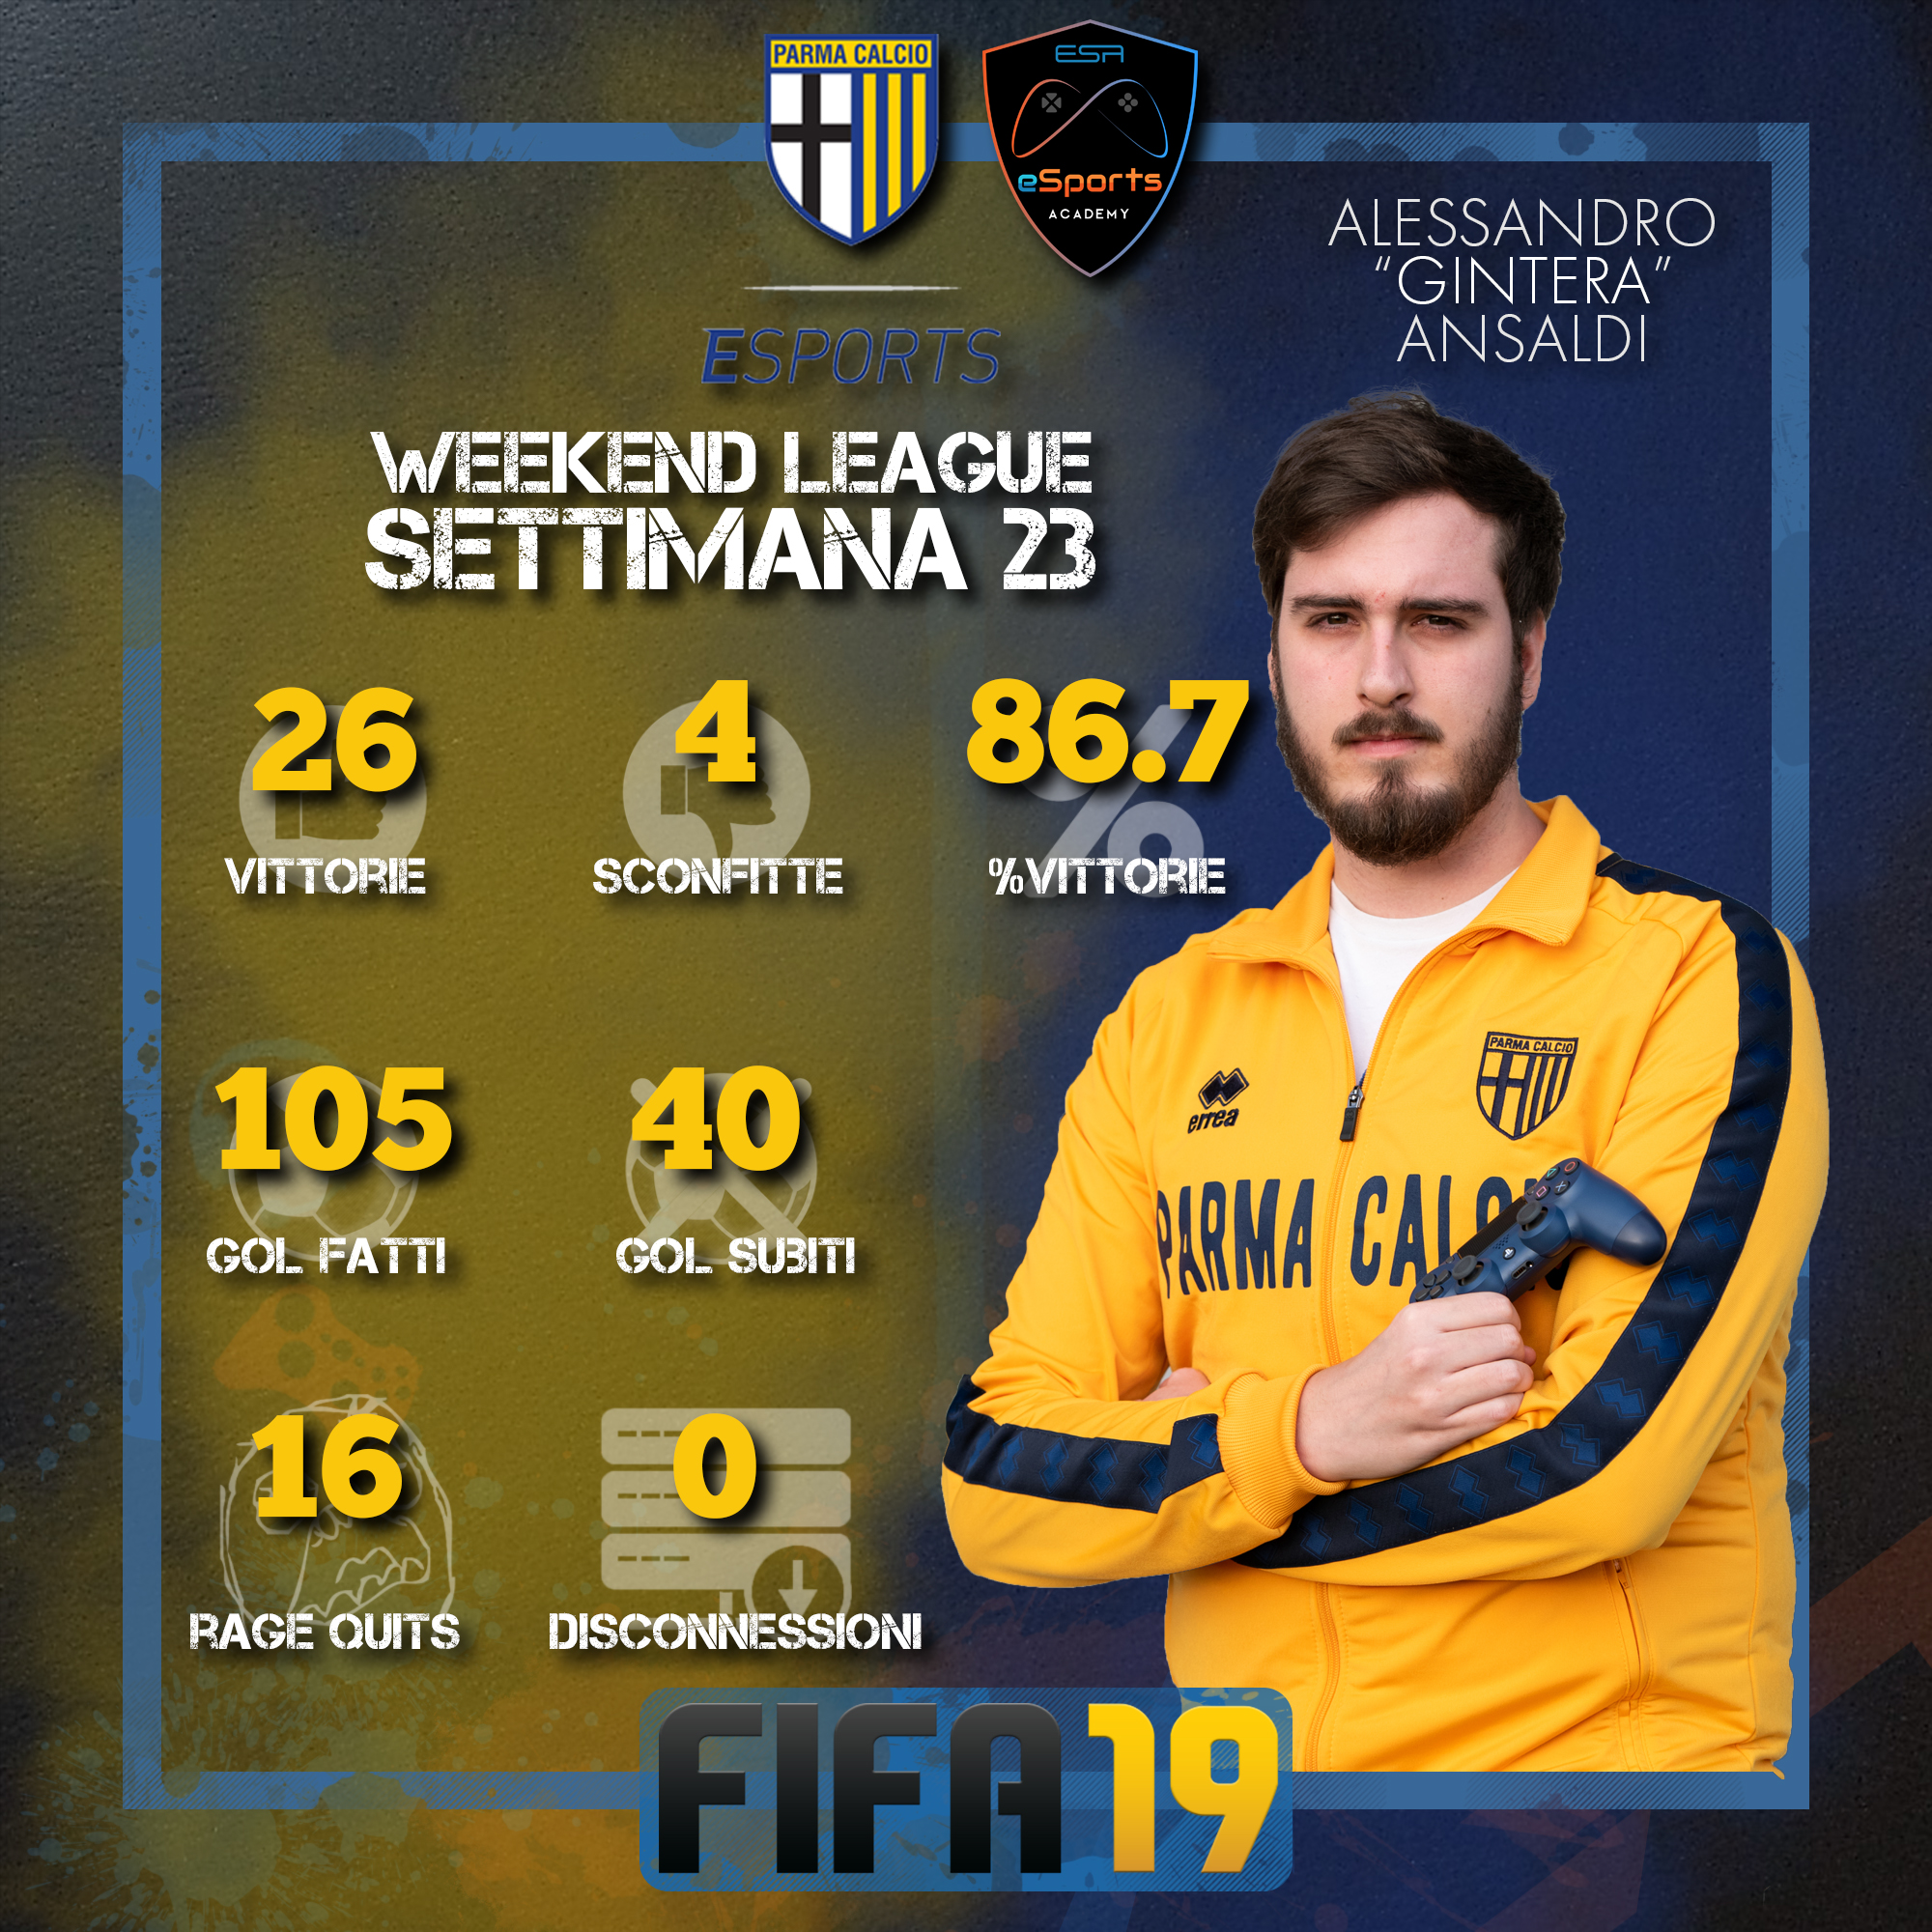 Fifa19_Weekend League_Week23_Gintera.jpg